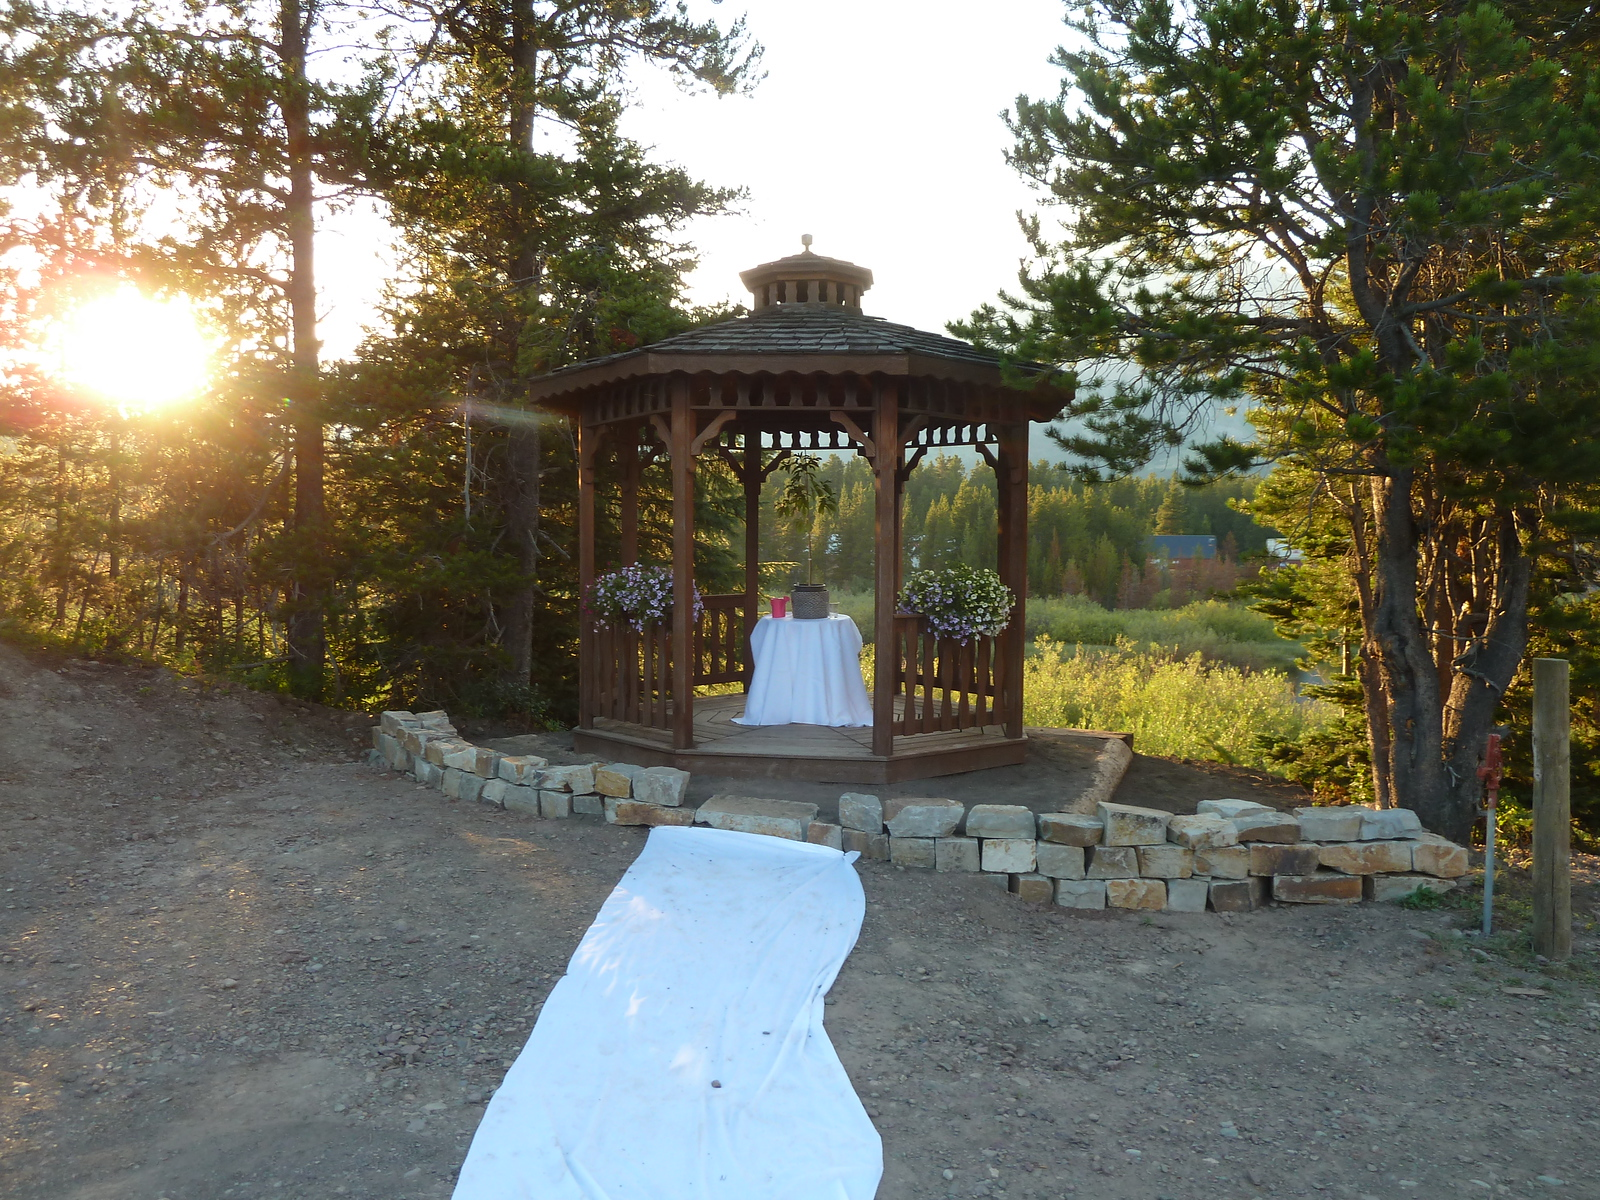 The Grand Wedding Area